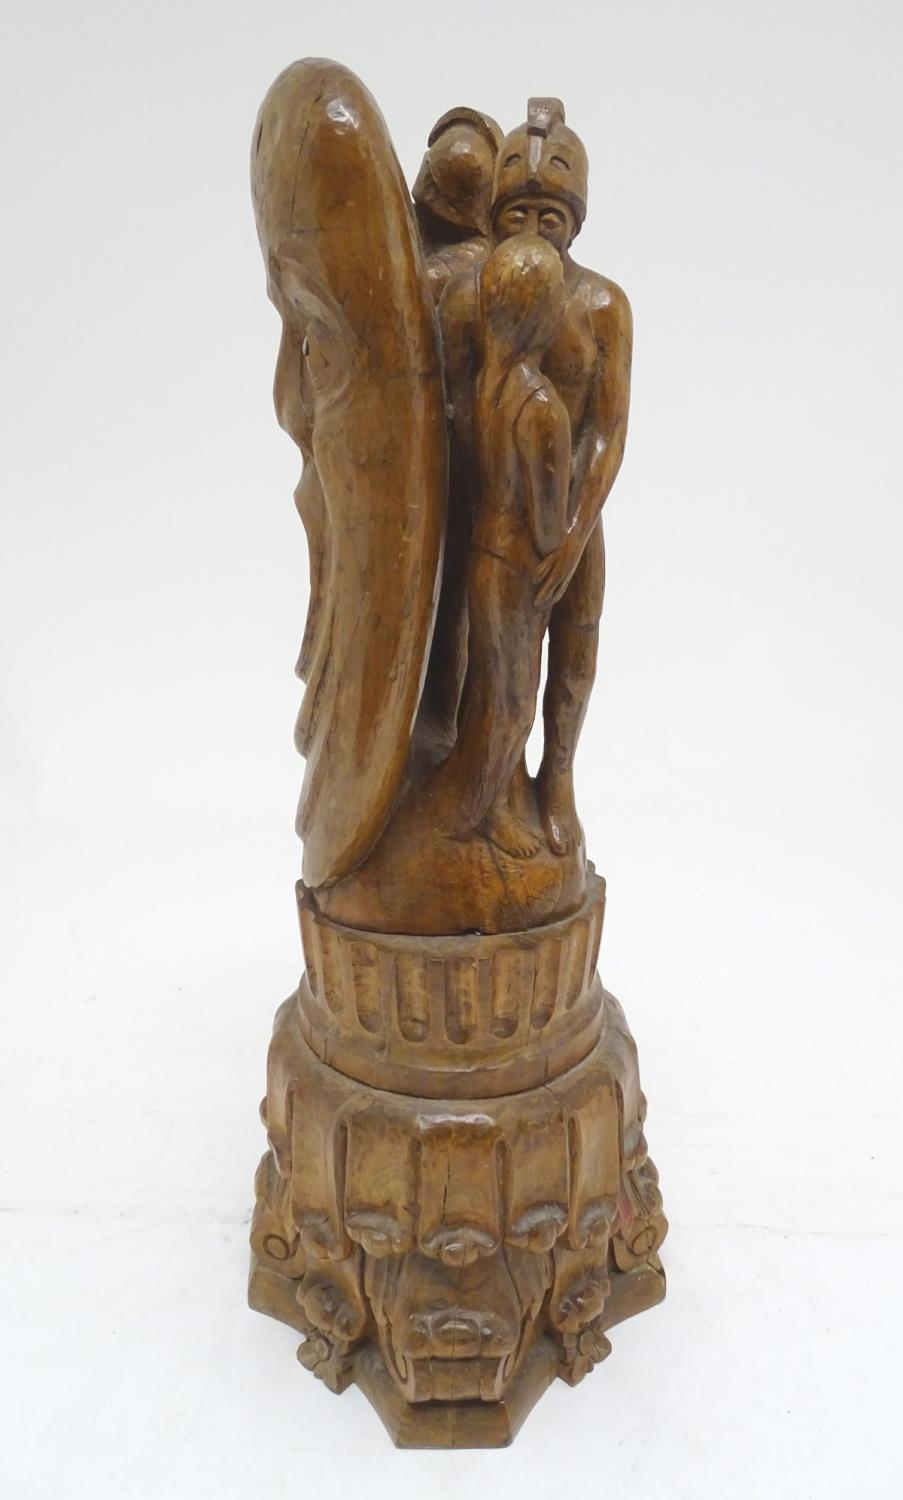 A 20thC carved wooden sculpture titled Tragic Muse to base, monogrammed TD and dated 1971 to side.